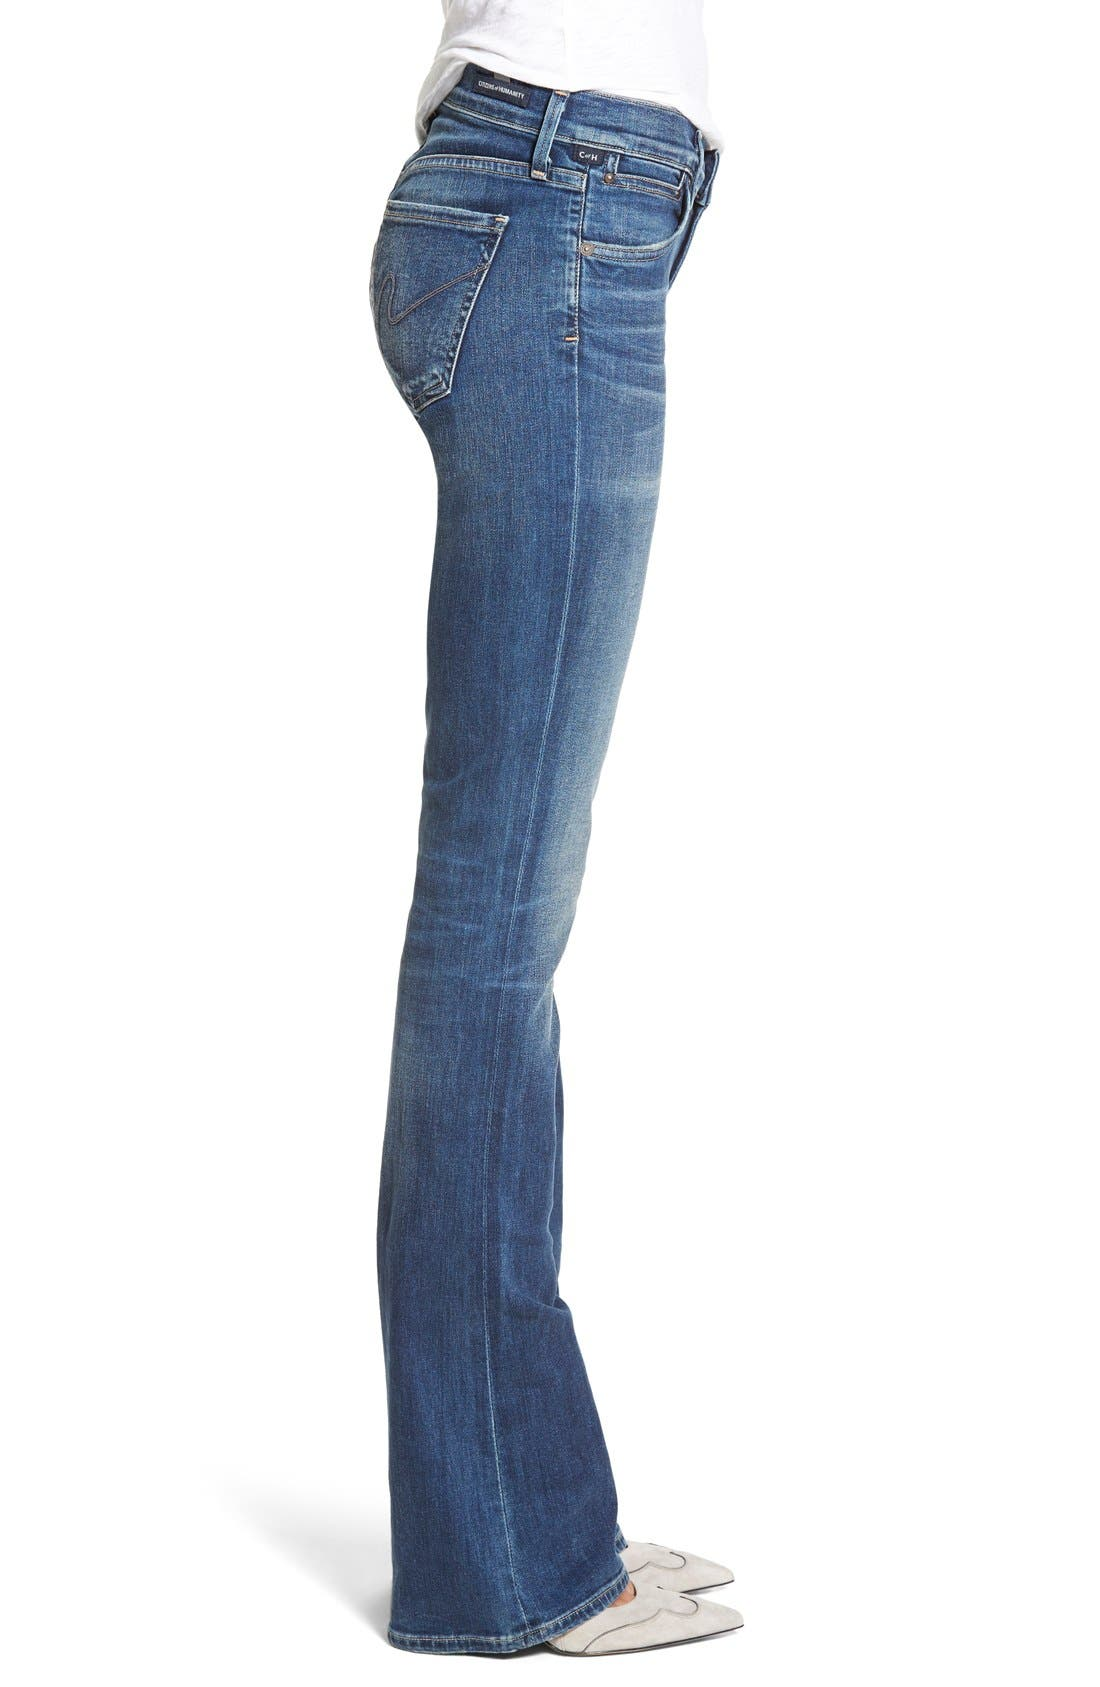 CITIZENS OF HUMANITY,                             'Emannuelle' Slim Bootcut Jeans,                             Alternate thumbnail 7, color,                             MODERN LOVE